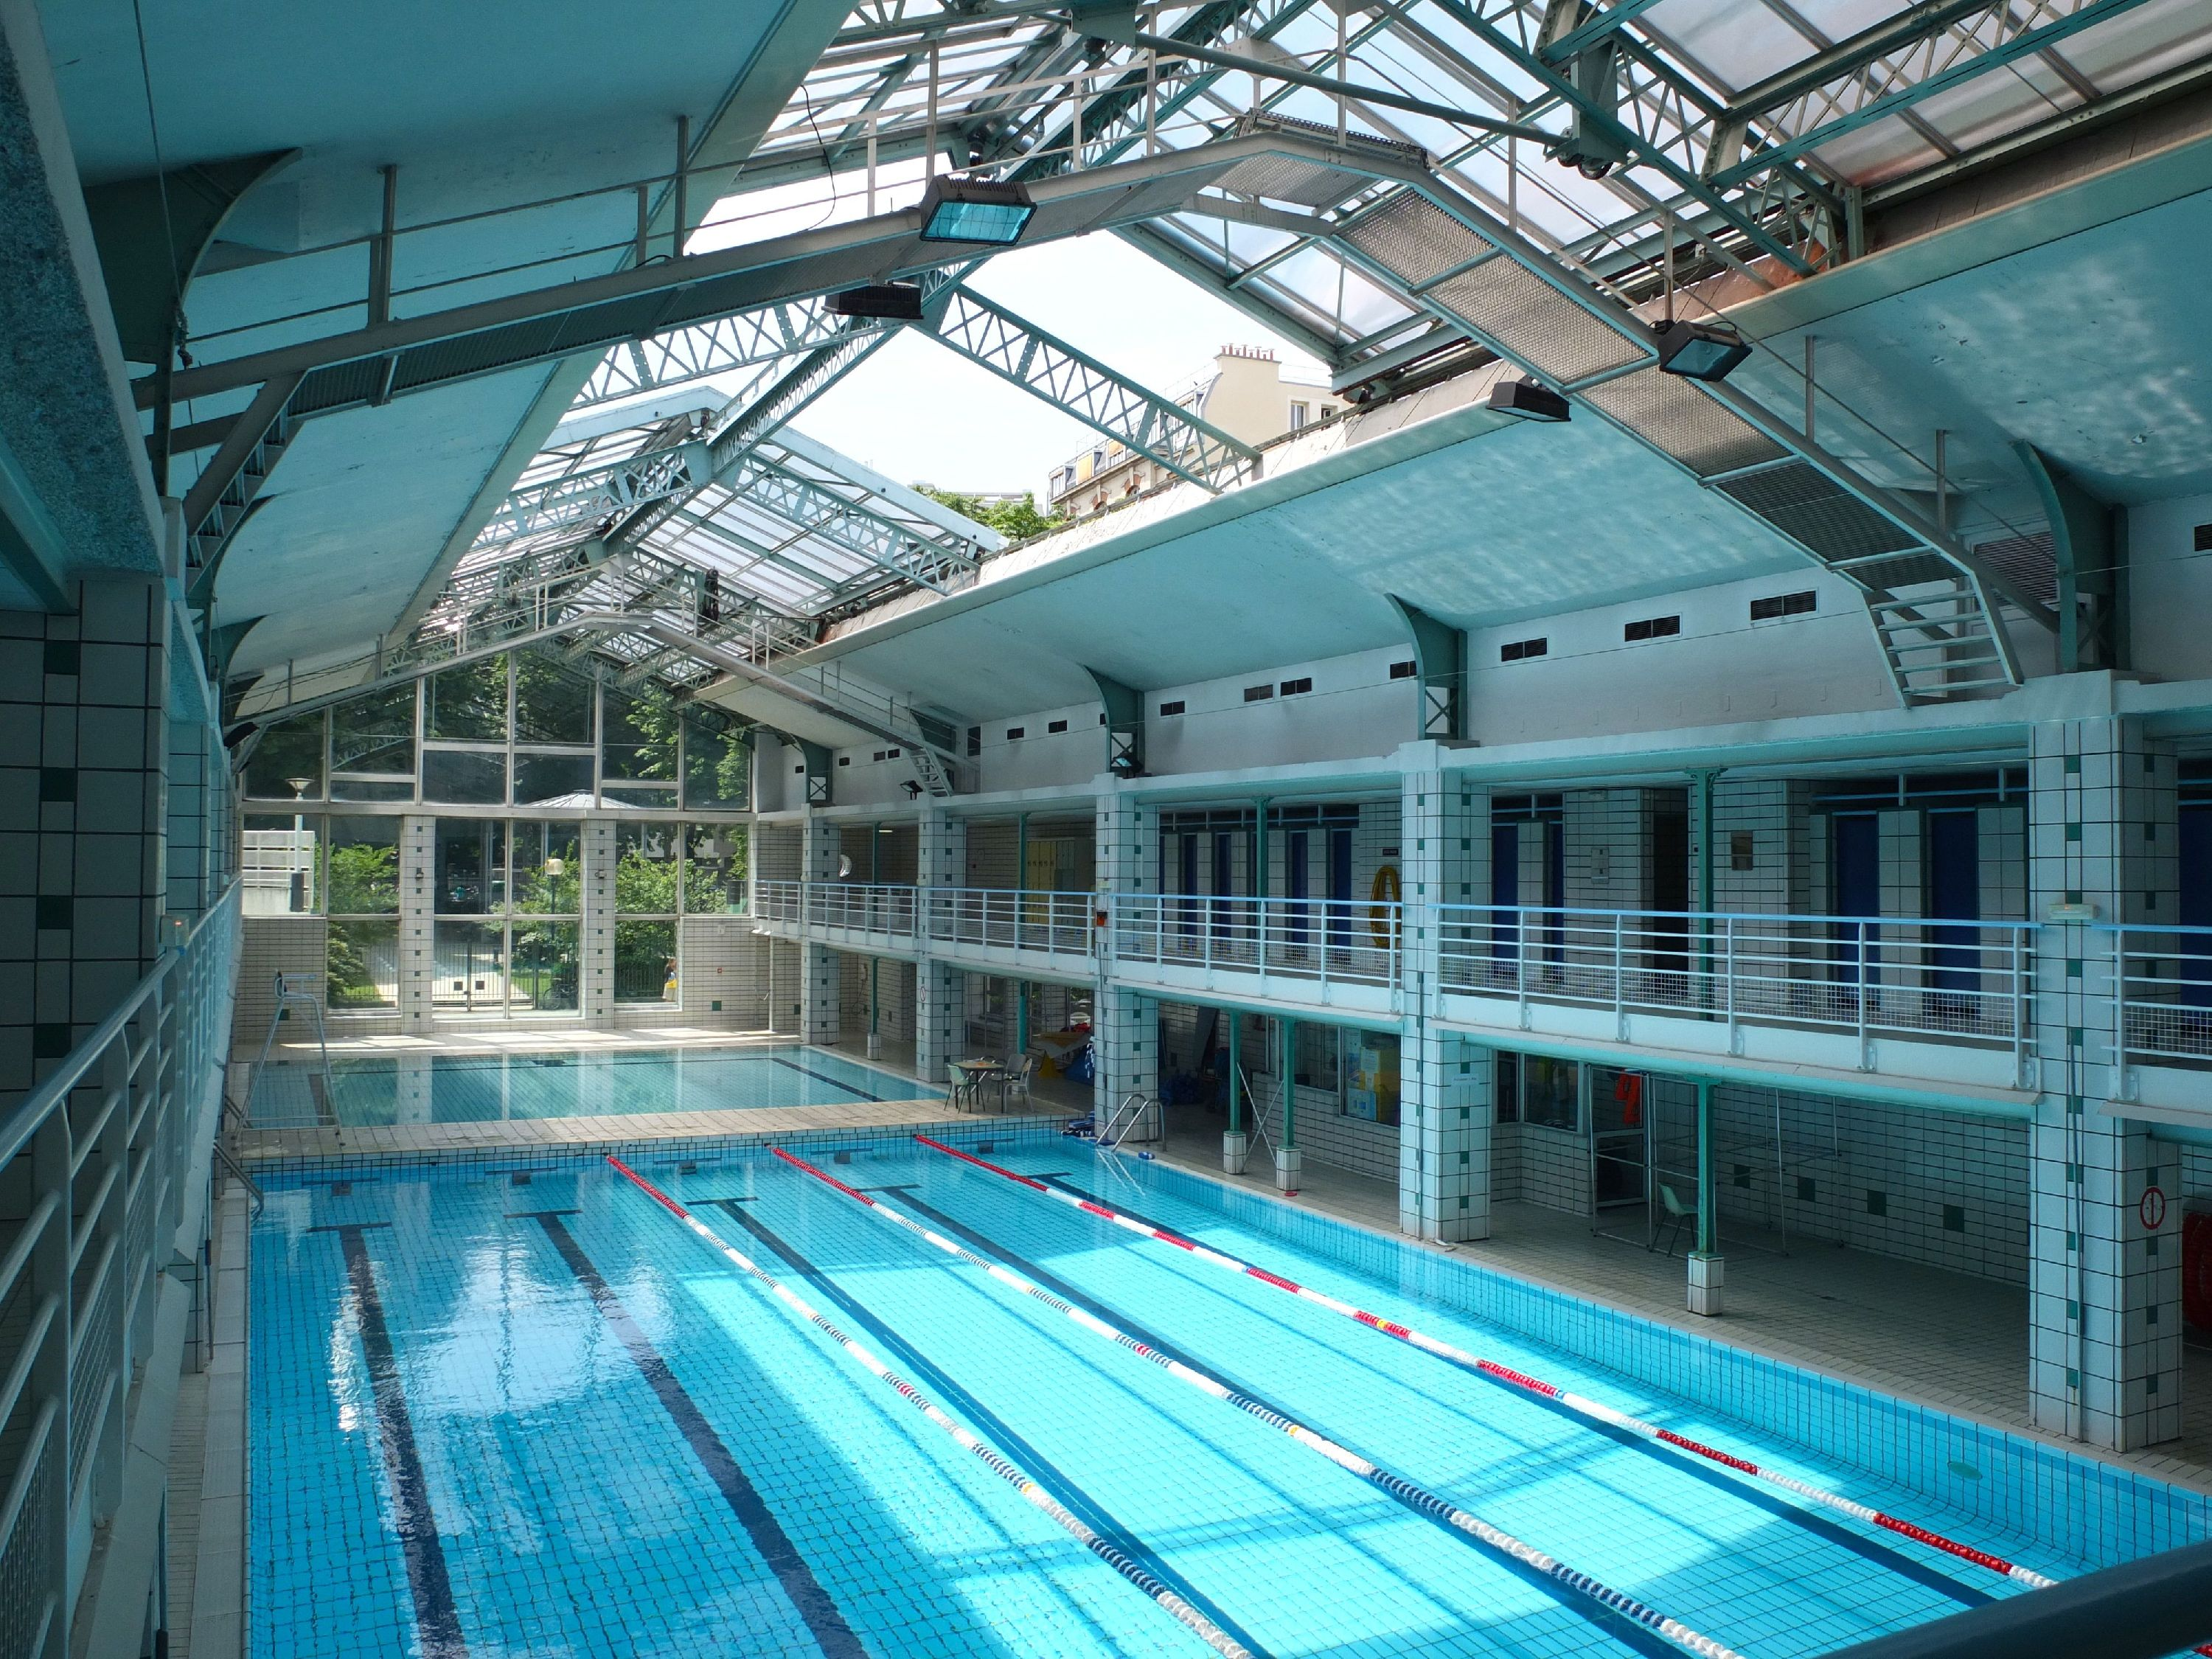 Piscine h bert sport la chapelle paris for Piscine 18eme